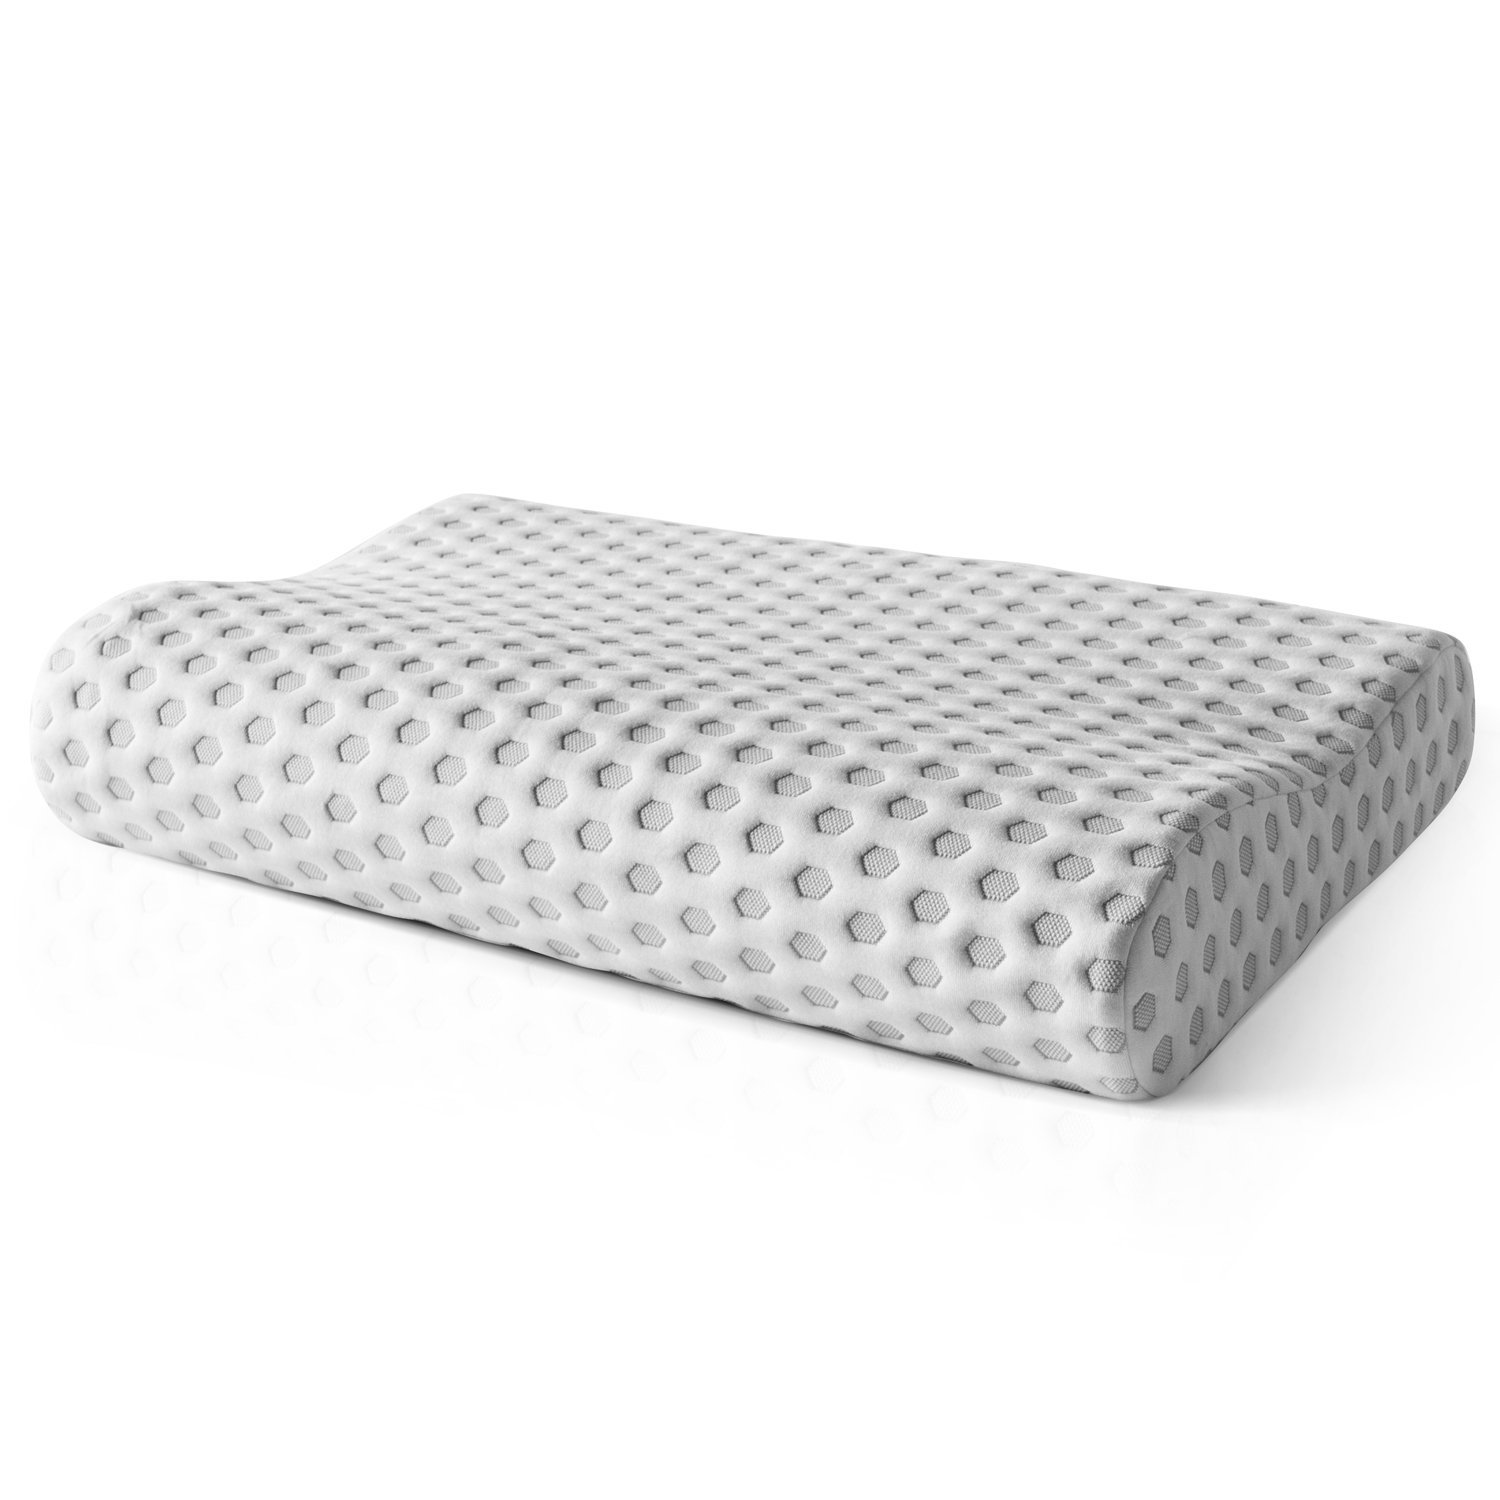 Sleep Restoration Premium Memory Foam Contour Pillow - Premium CertiPUR-US Memory Foam - Hypoallergenic - Removable Bamboo Cover Included